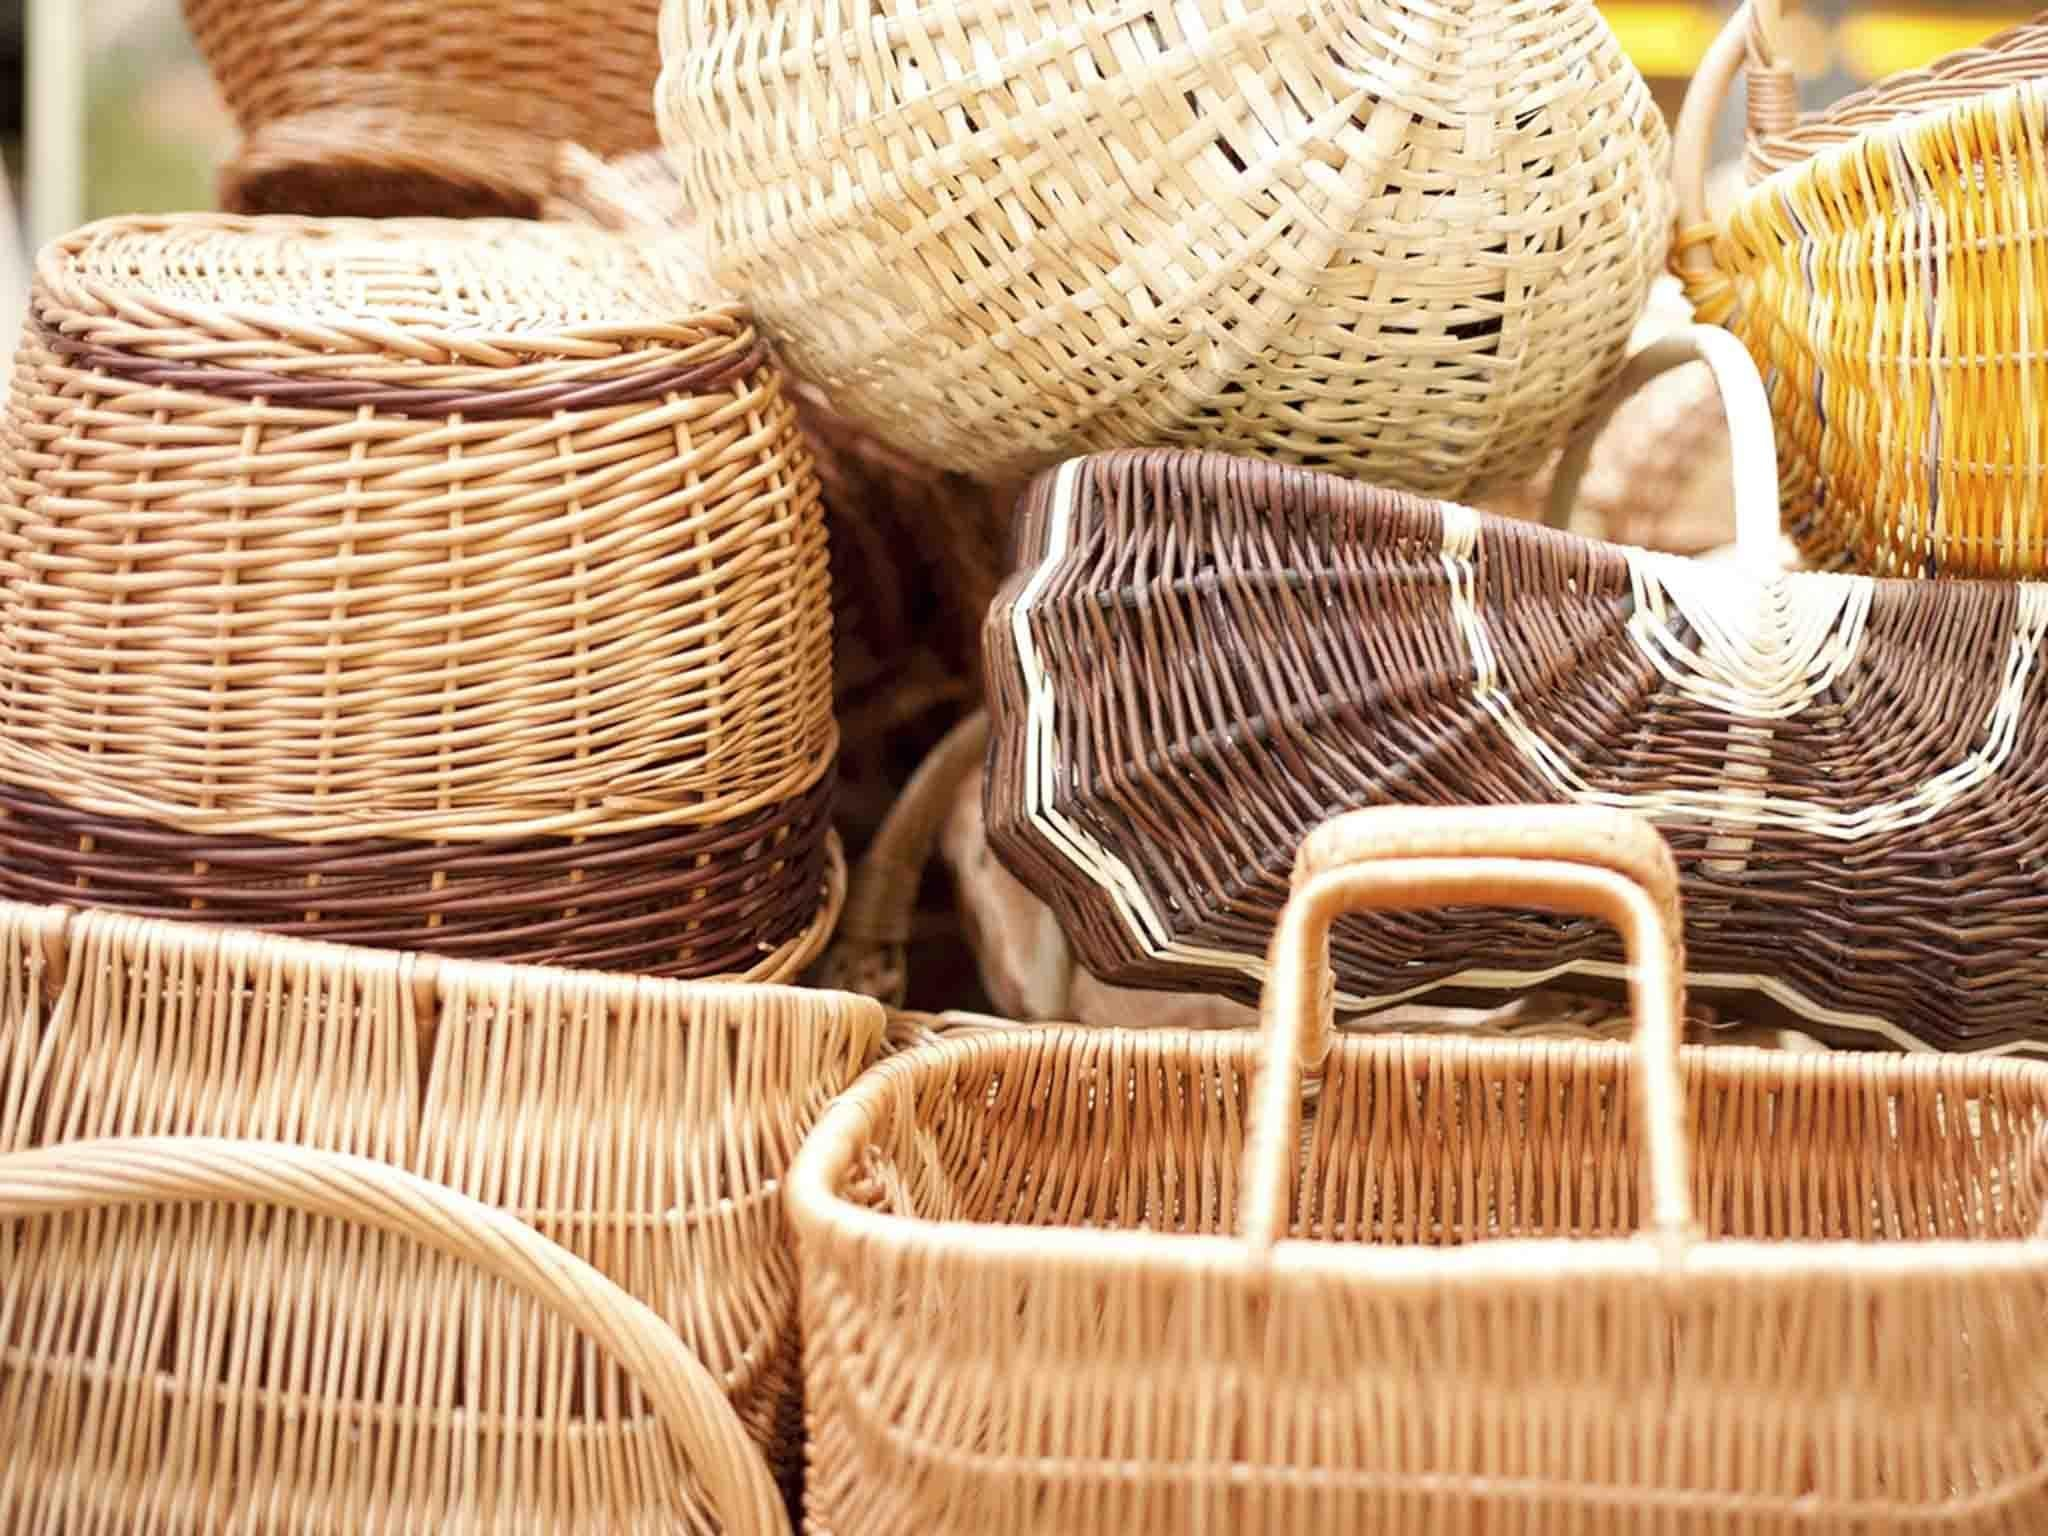 Why Basket Bags Are The Must-have Trend This Season